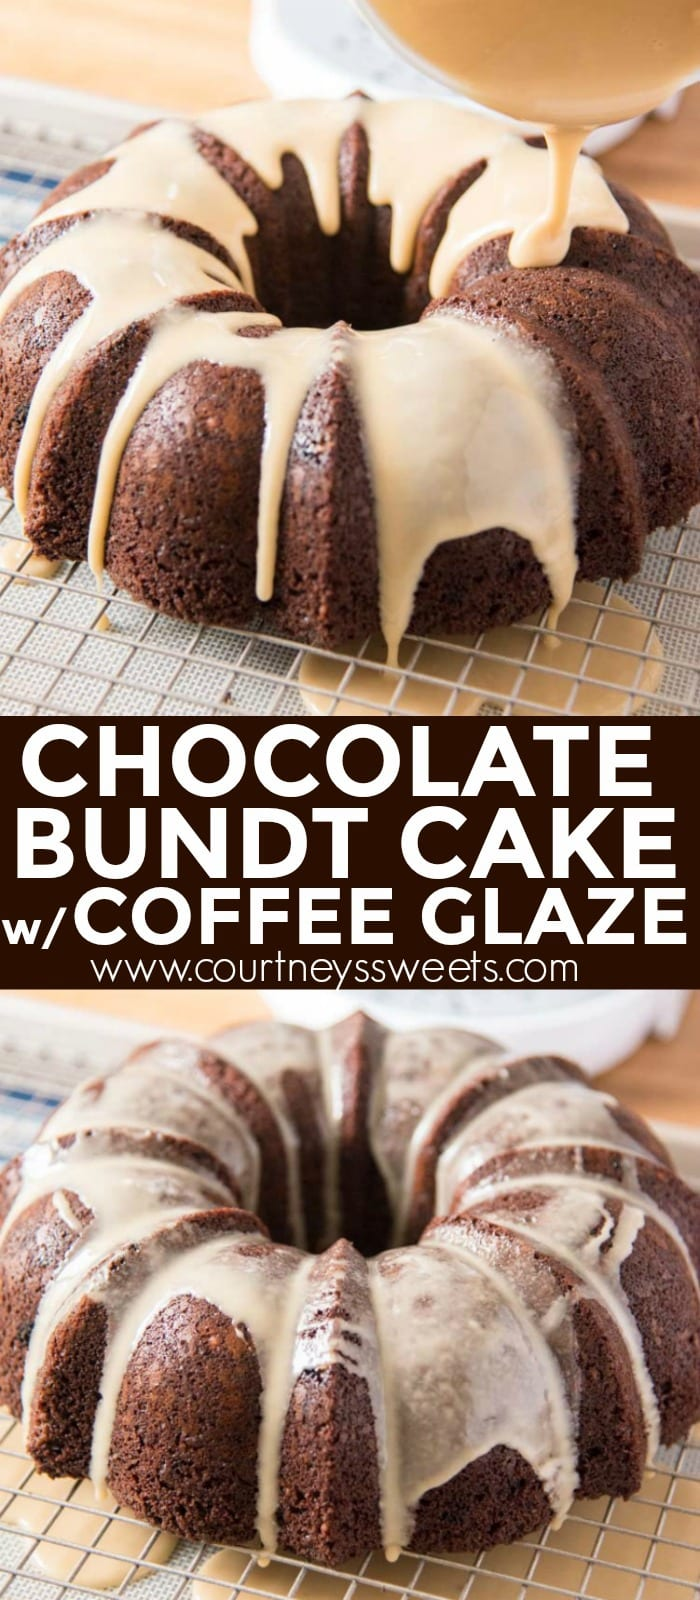 A rich and chocolate bundt cake with a sweet coffee glaze, this will remind you of eating a fresh baked glazed donut.